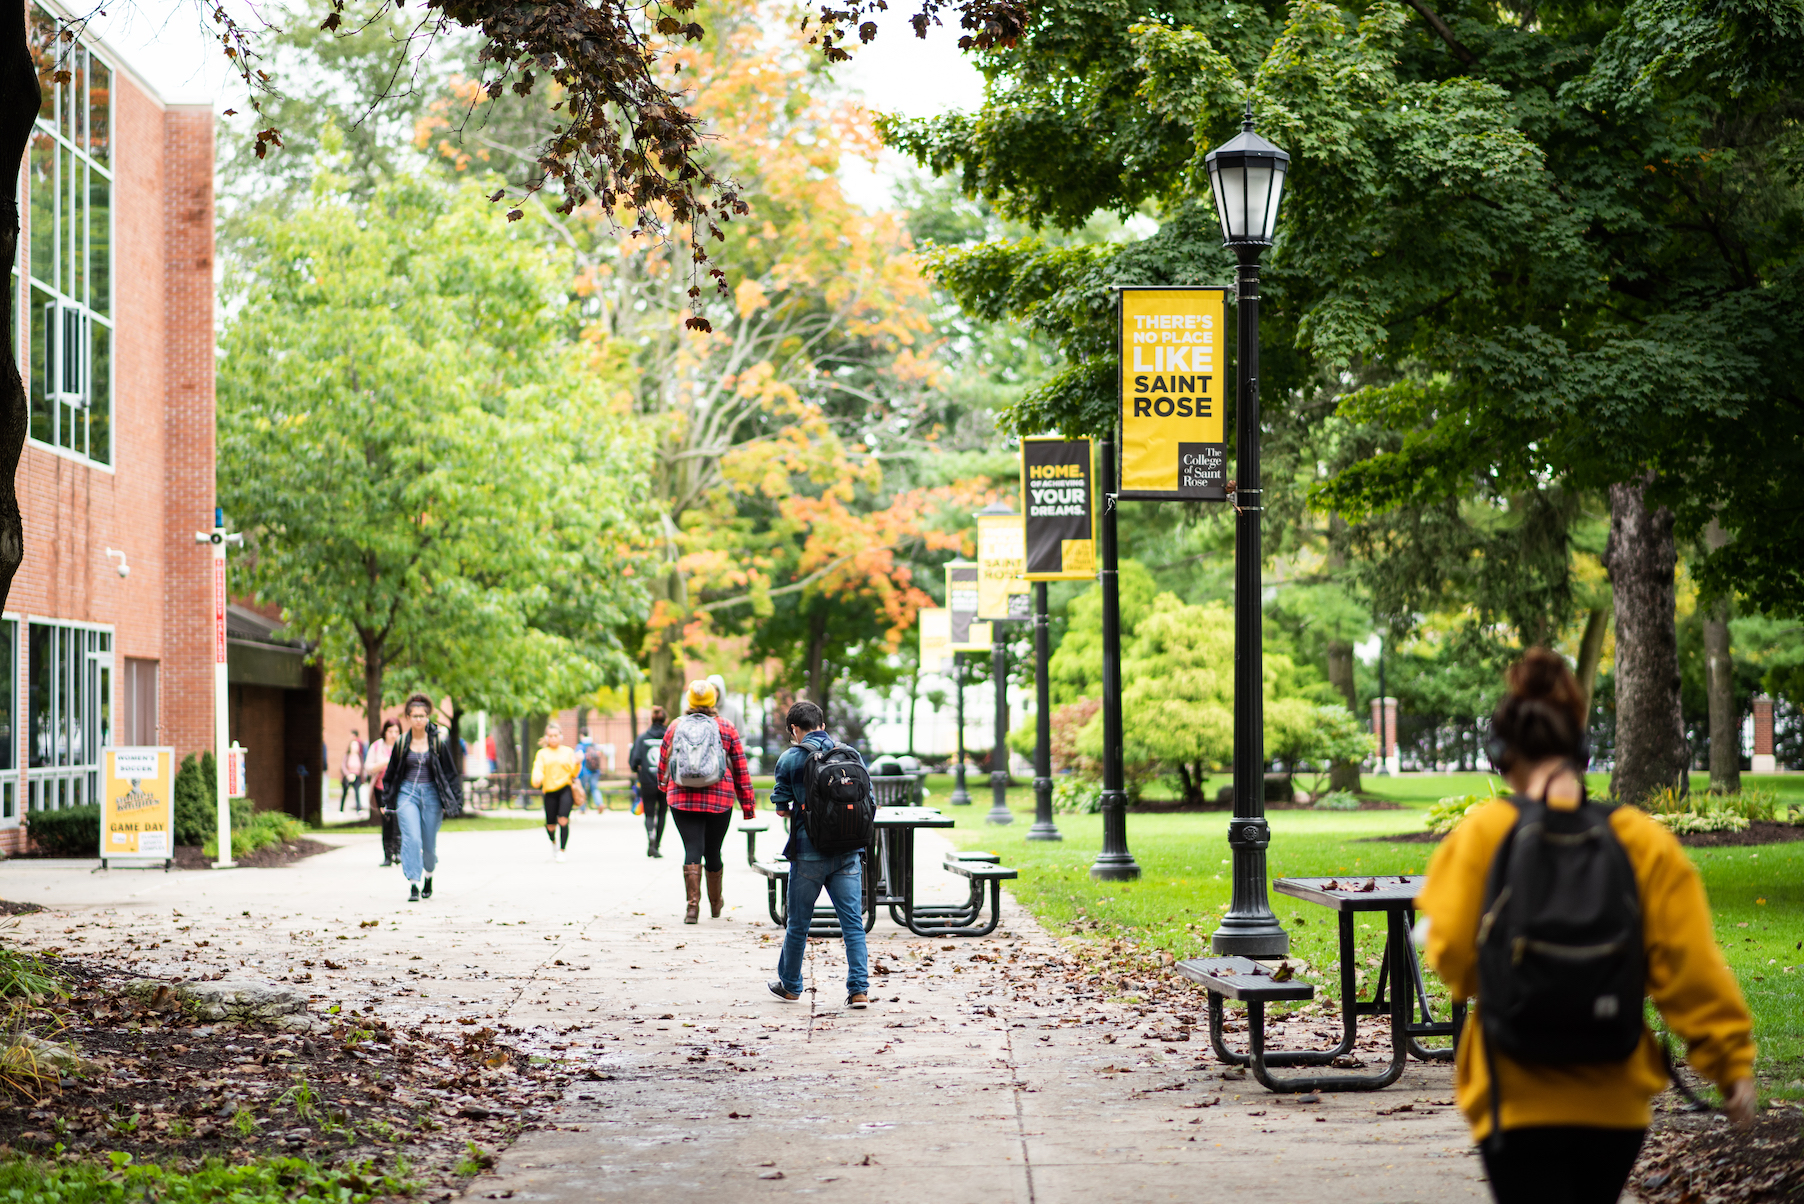 Students walking outside at College of Saint Rose campus during fall